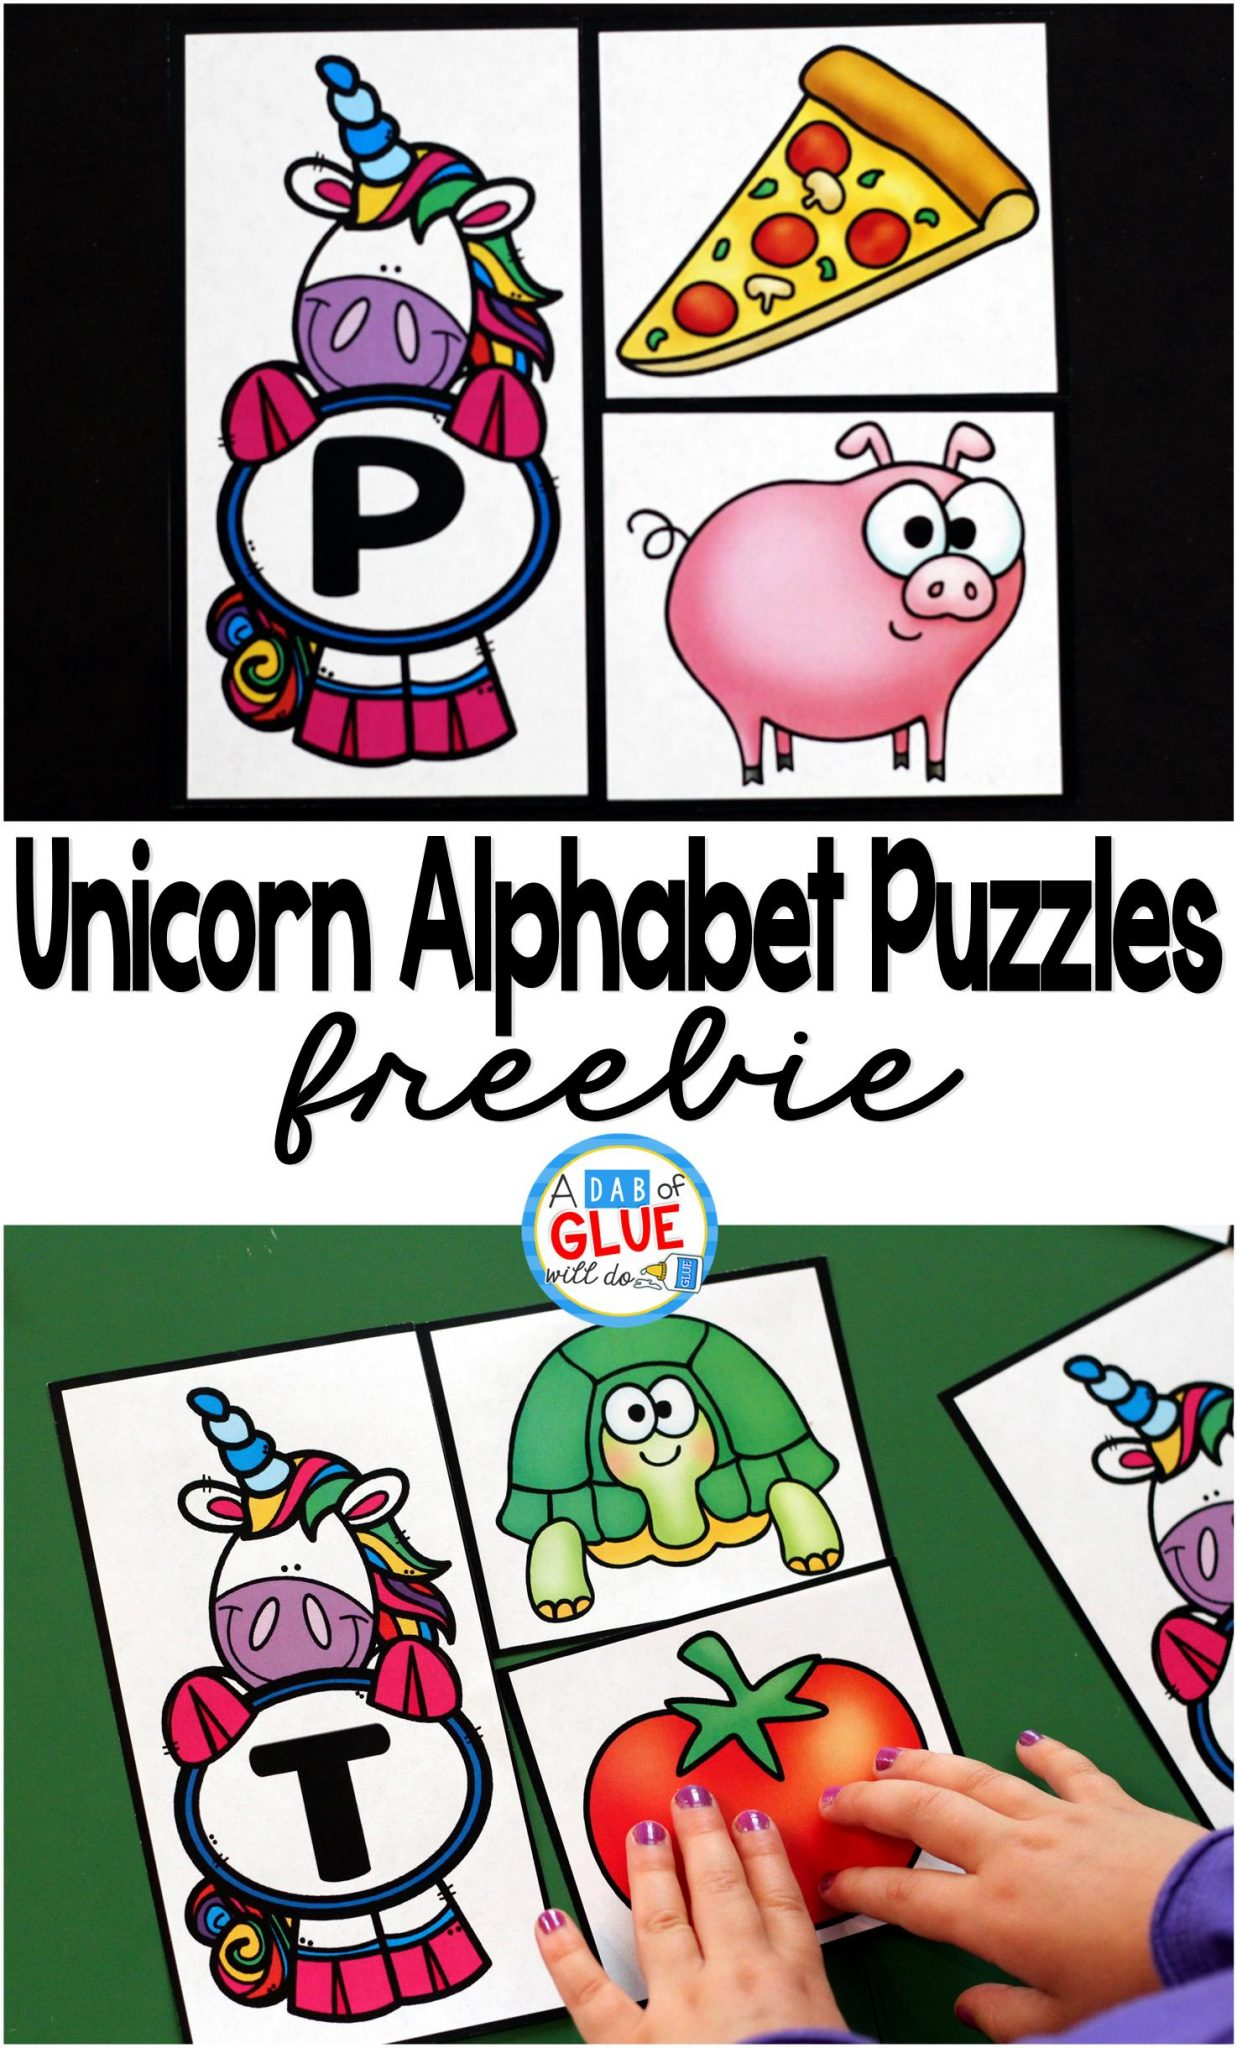 Unicorn Alphabet Puzzles